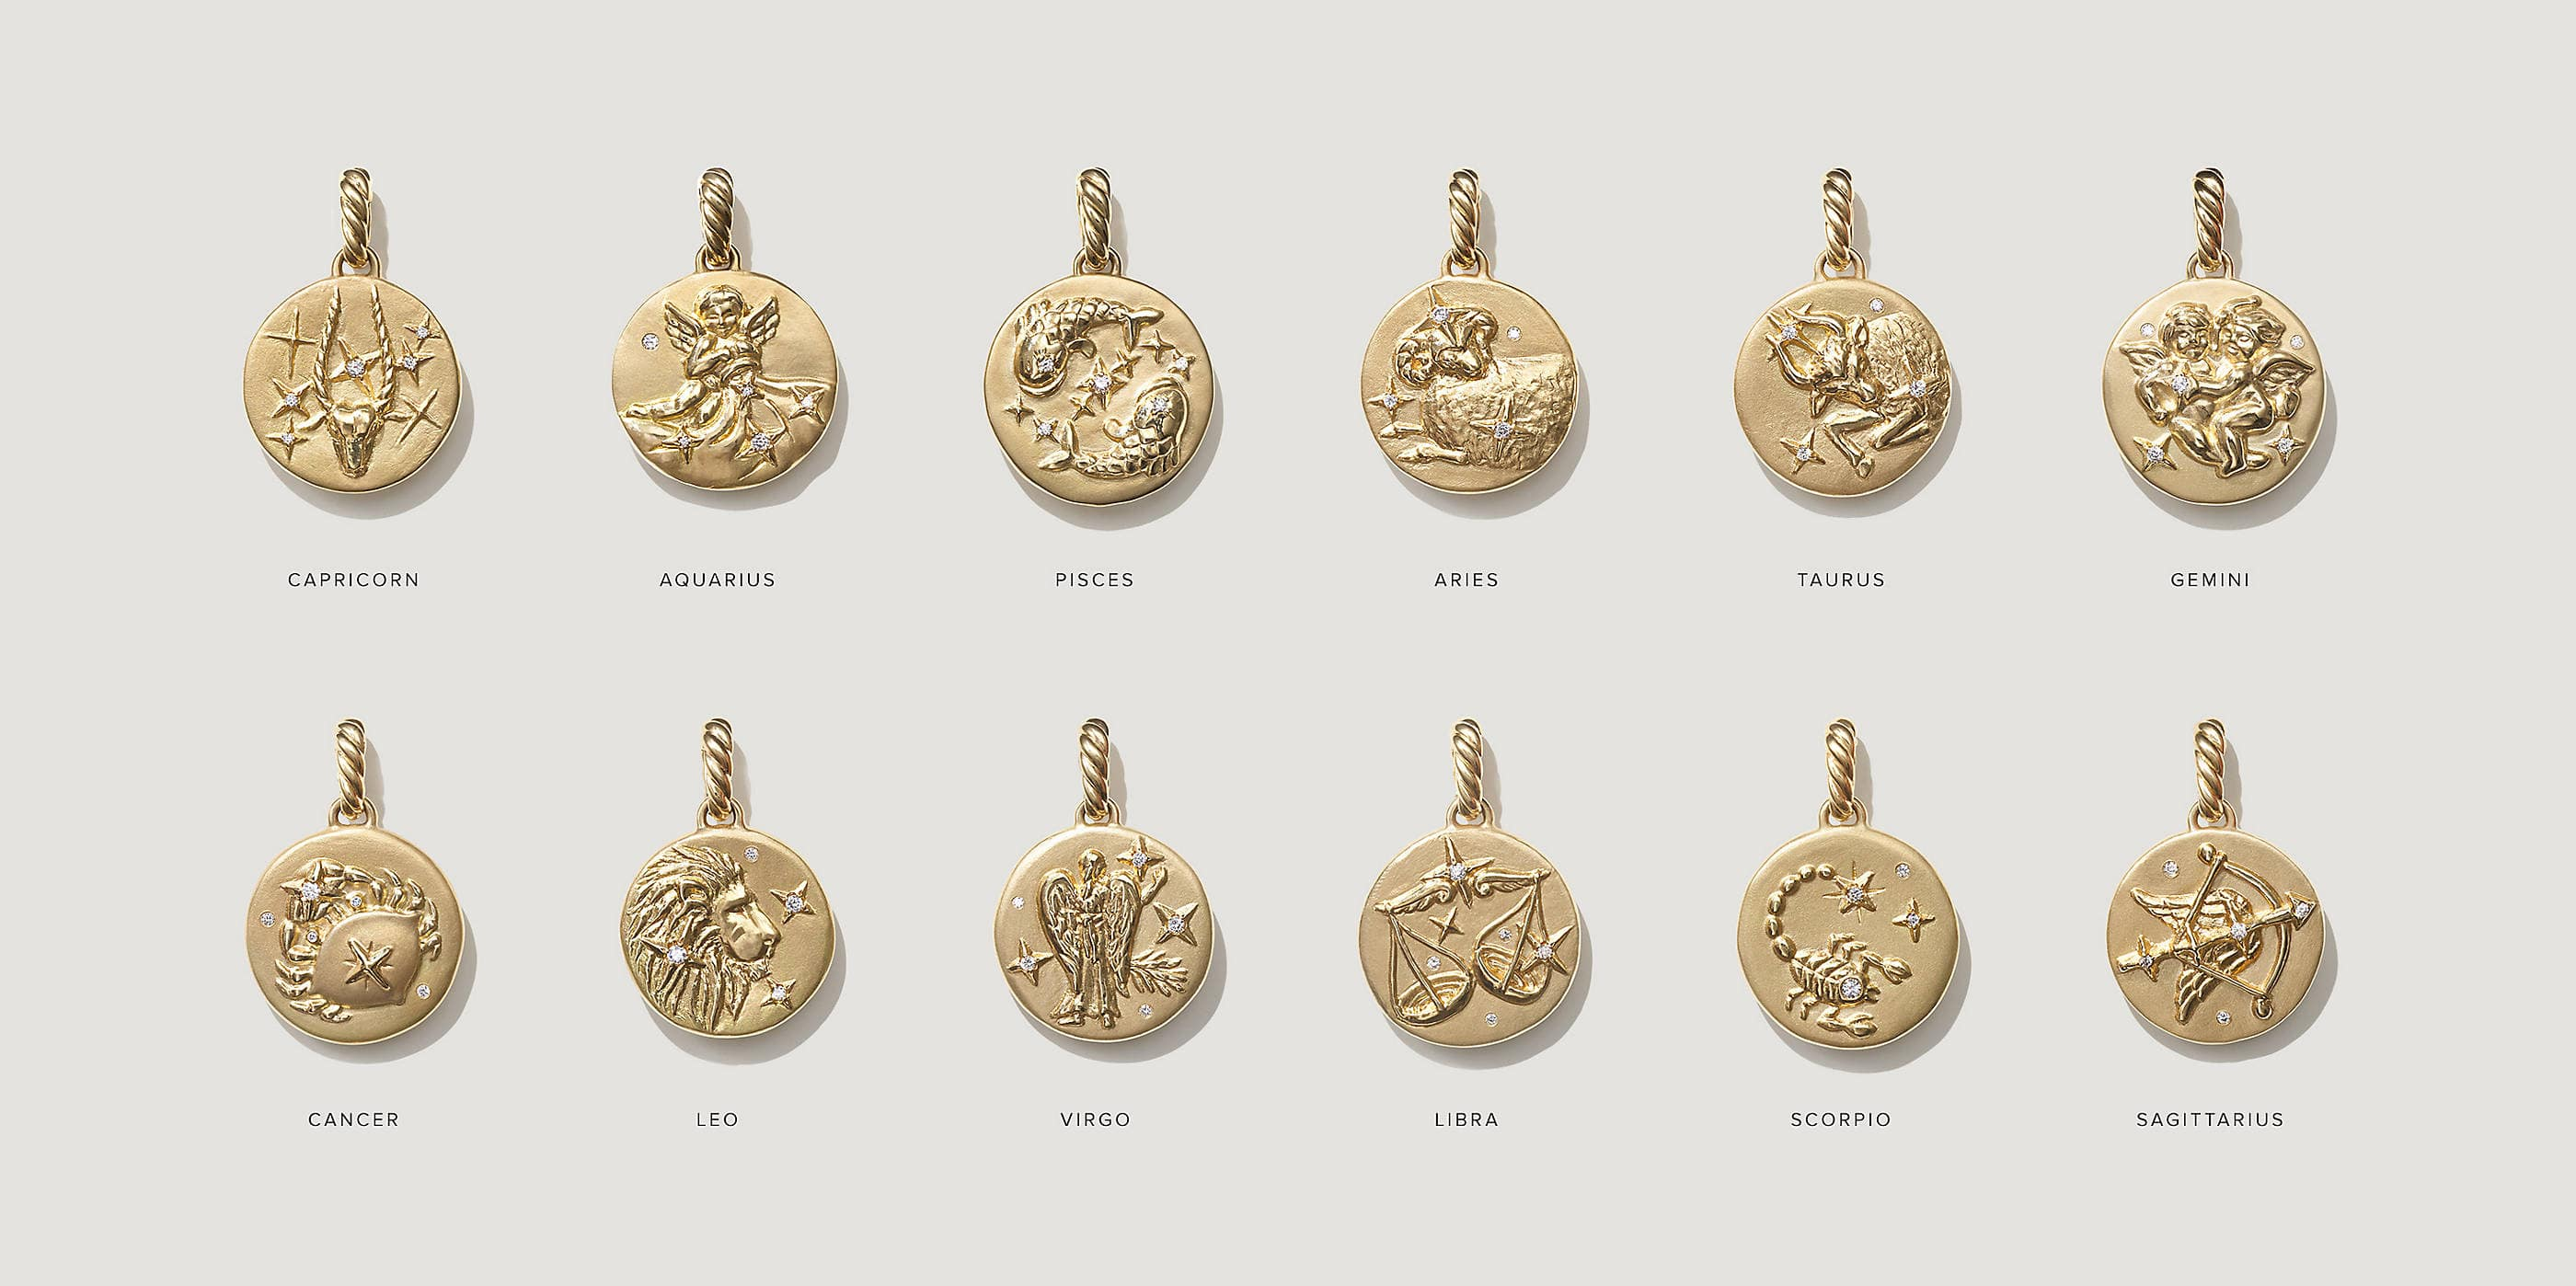 An image shows two rows of six David Yurman zodiac charms, each depicting a different zodiac symbol, placed on a white background. Underneath each charm is the name of its zodiac sign, from Capricorn to Sagittarius. The jewelry is crafted from 18K yellow gold with pavé diamond accents.